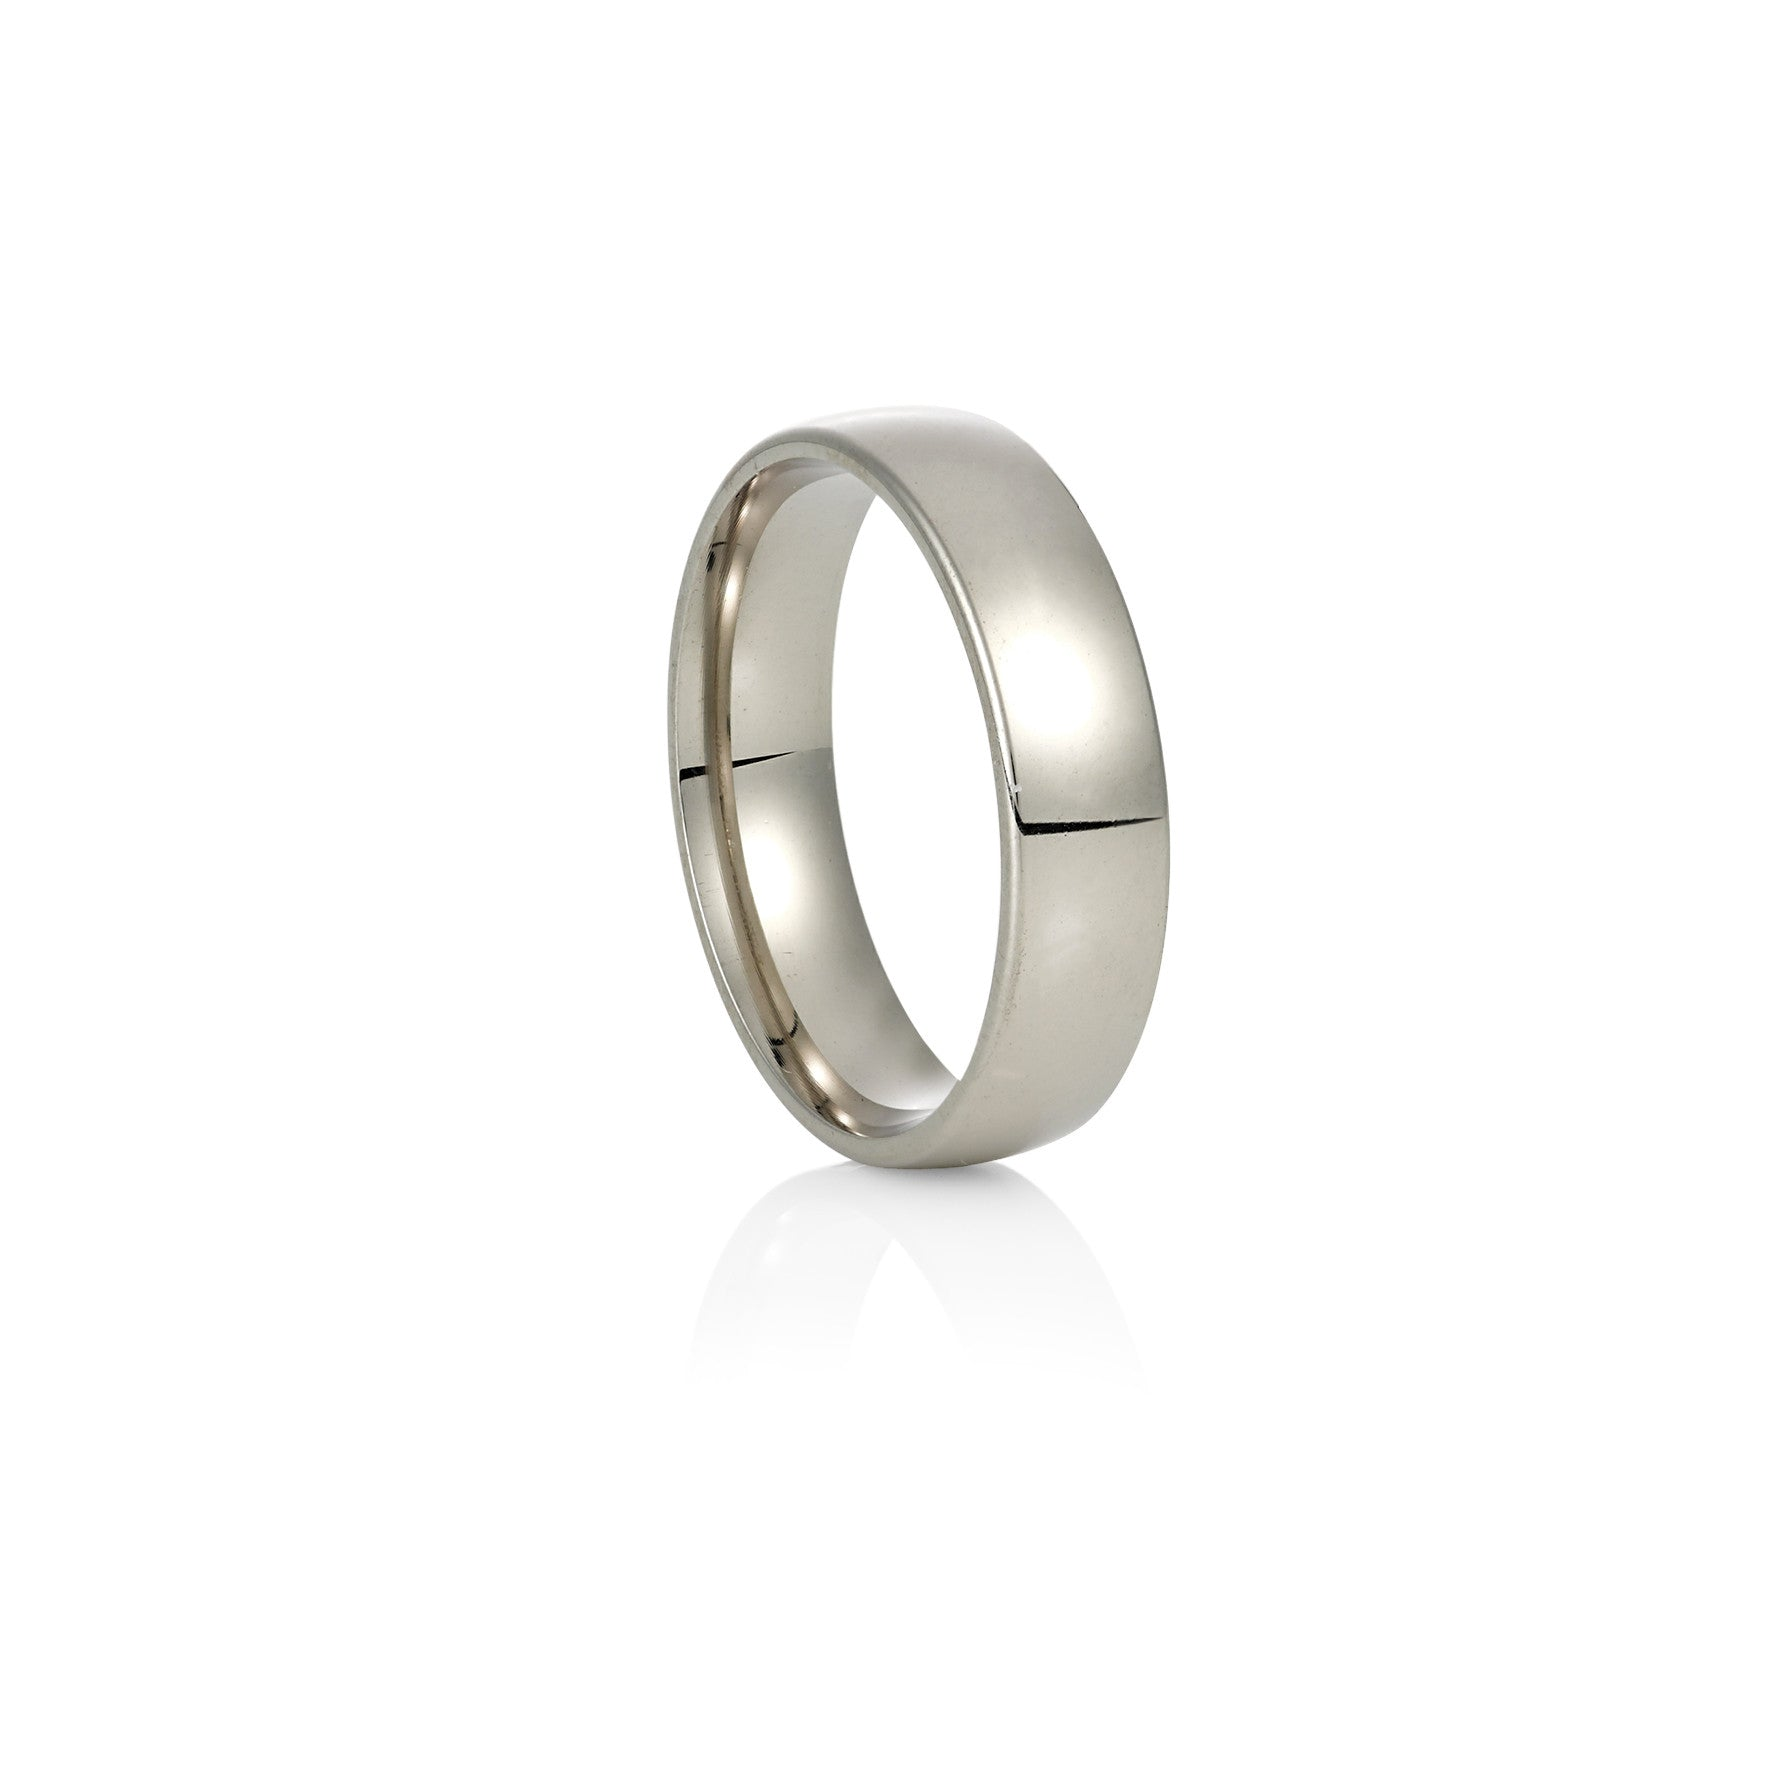 White Gold Wedding Ring: Low Half Round